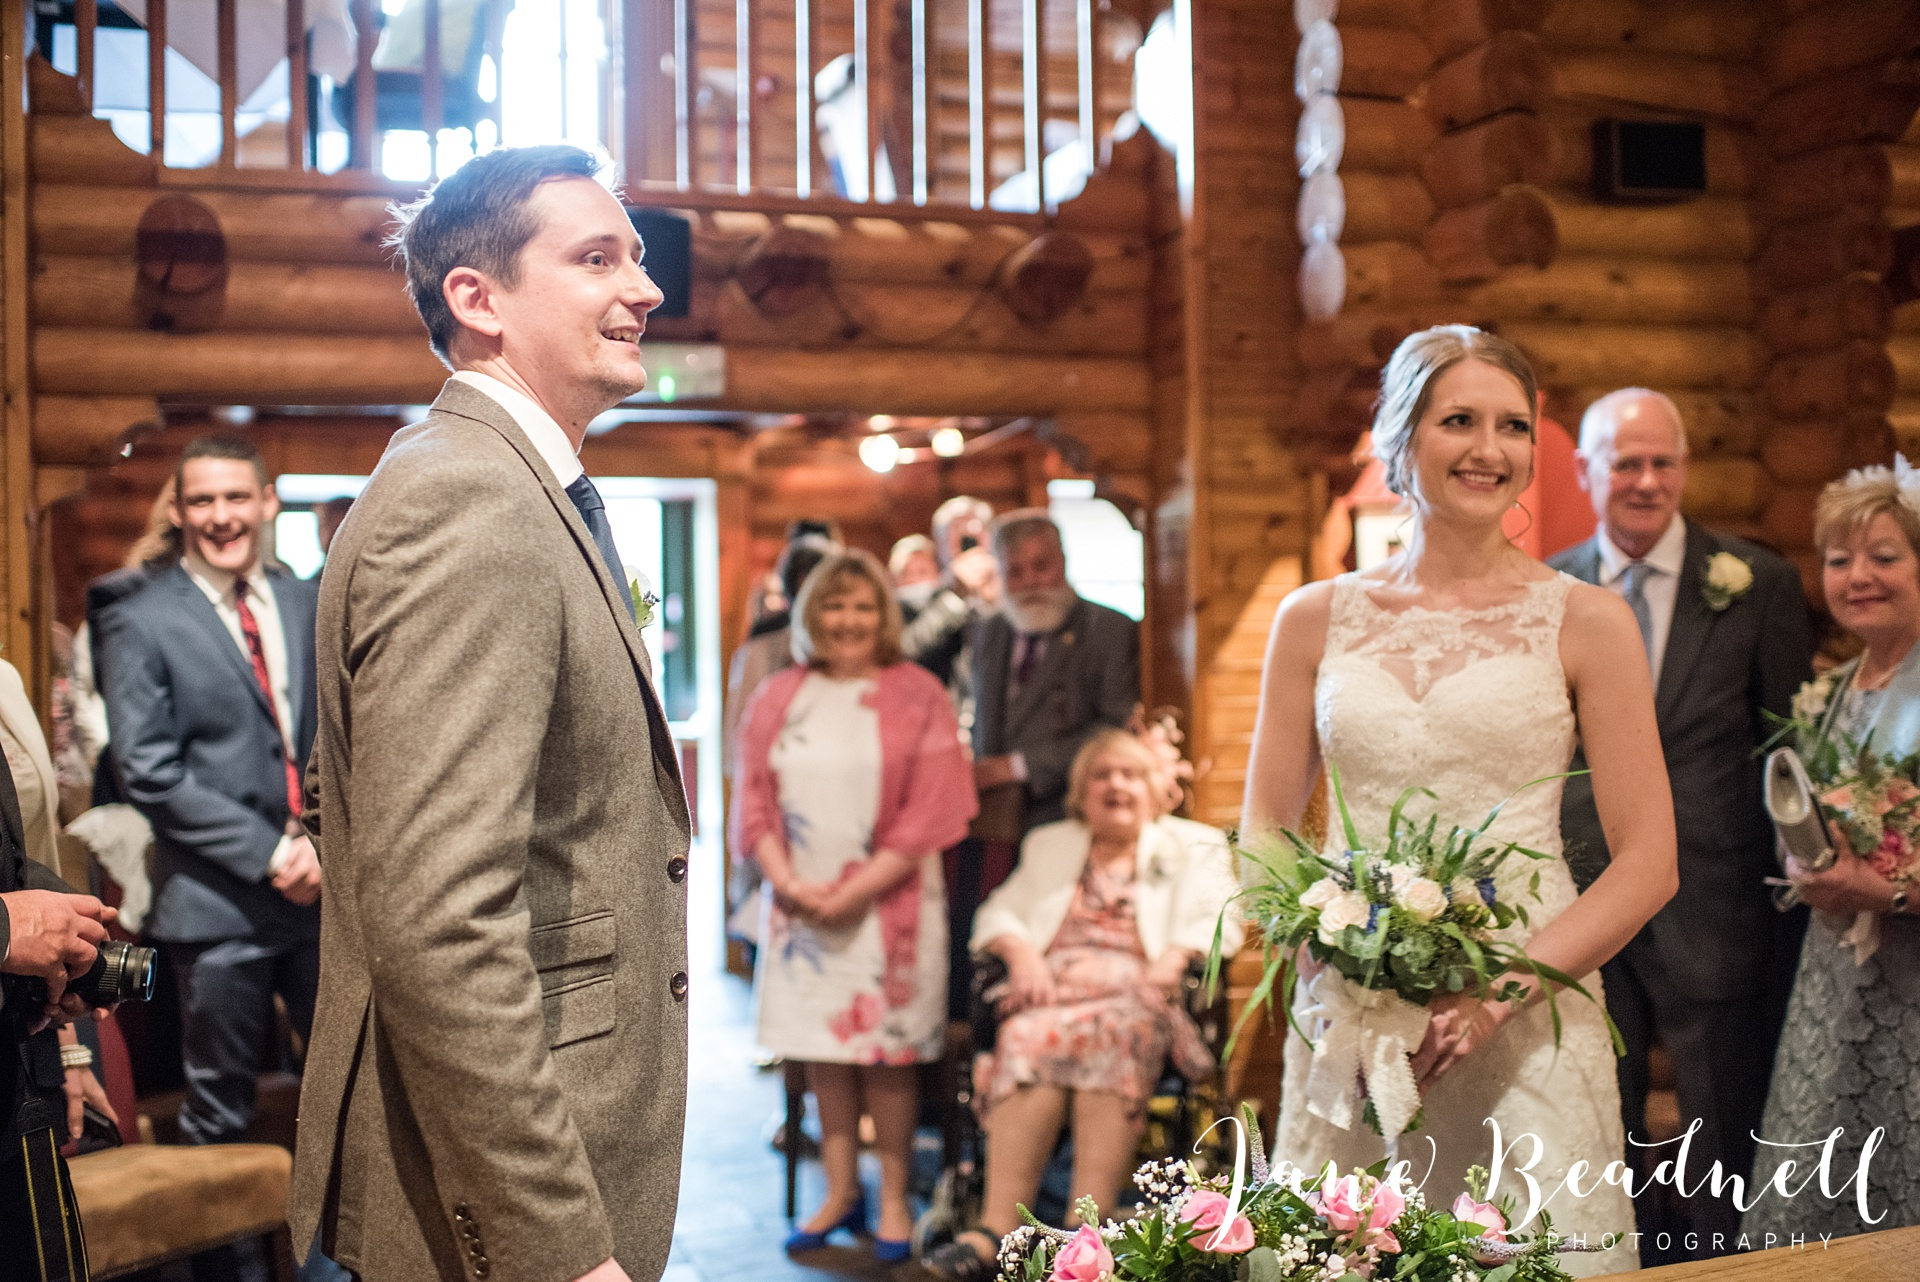 Otley Chevin Lodge wedding photography by Jane Beadnell Photography Leeds_0048